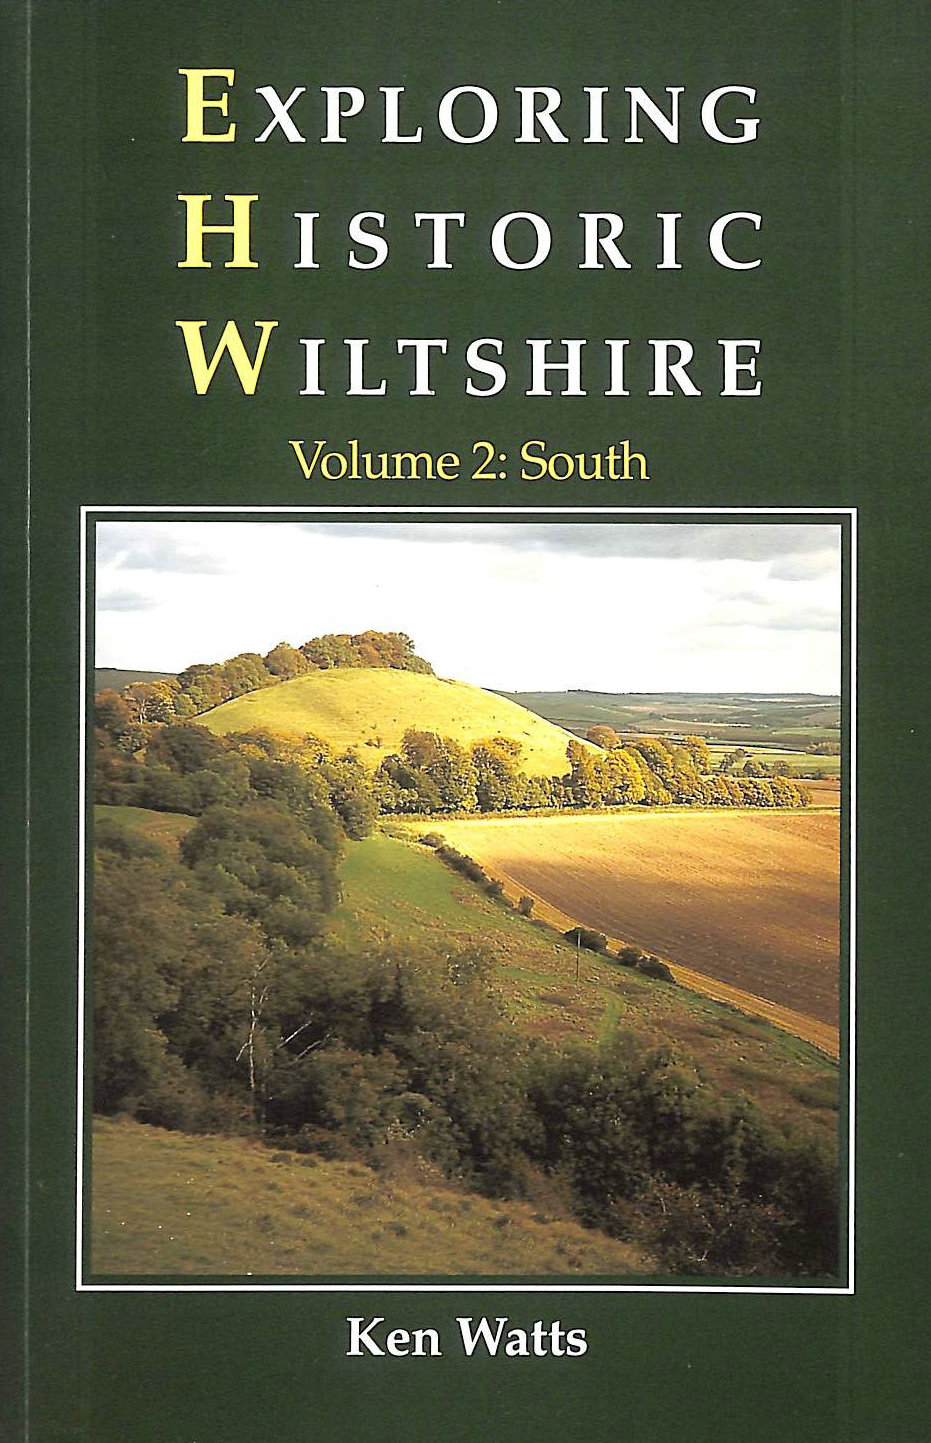 Image for Exploring Historic Wiltshire: Vol. 2, South: South v. 2